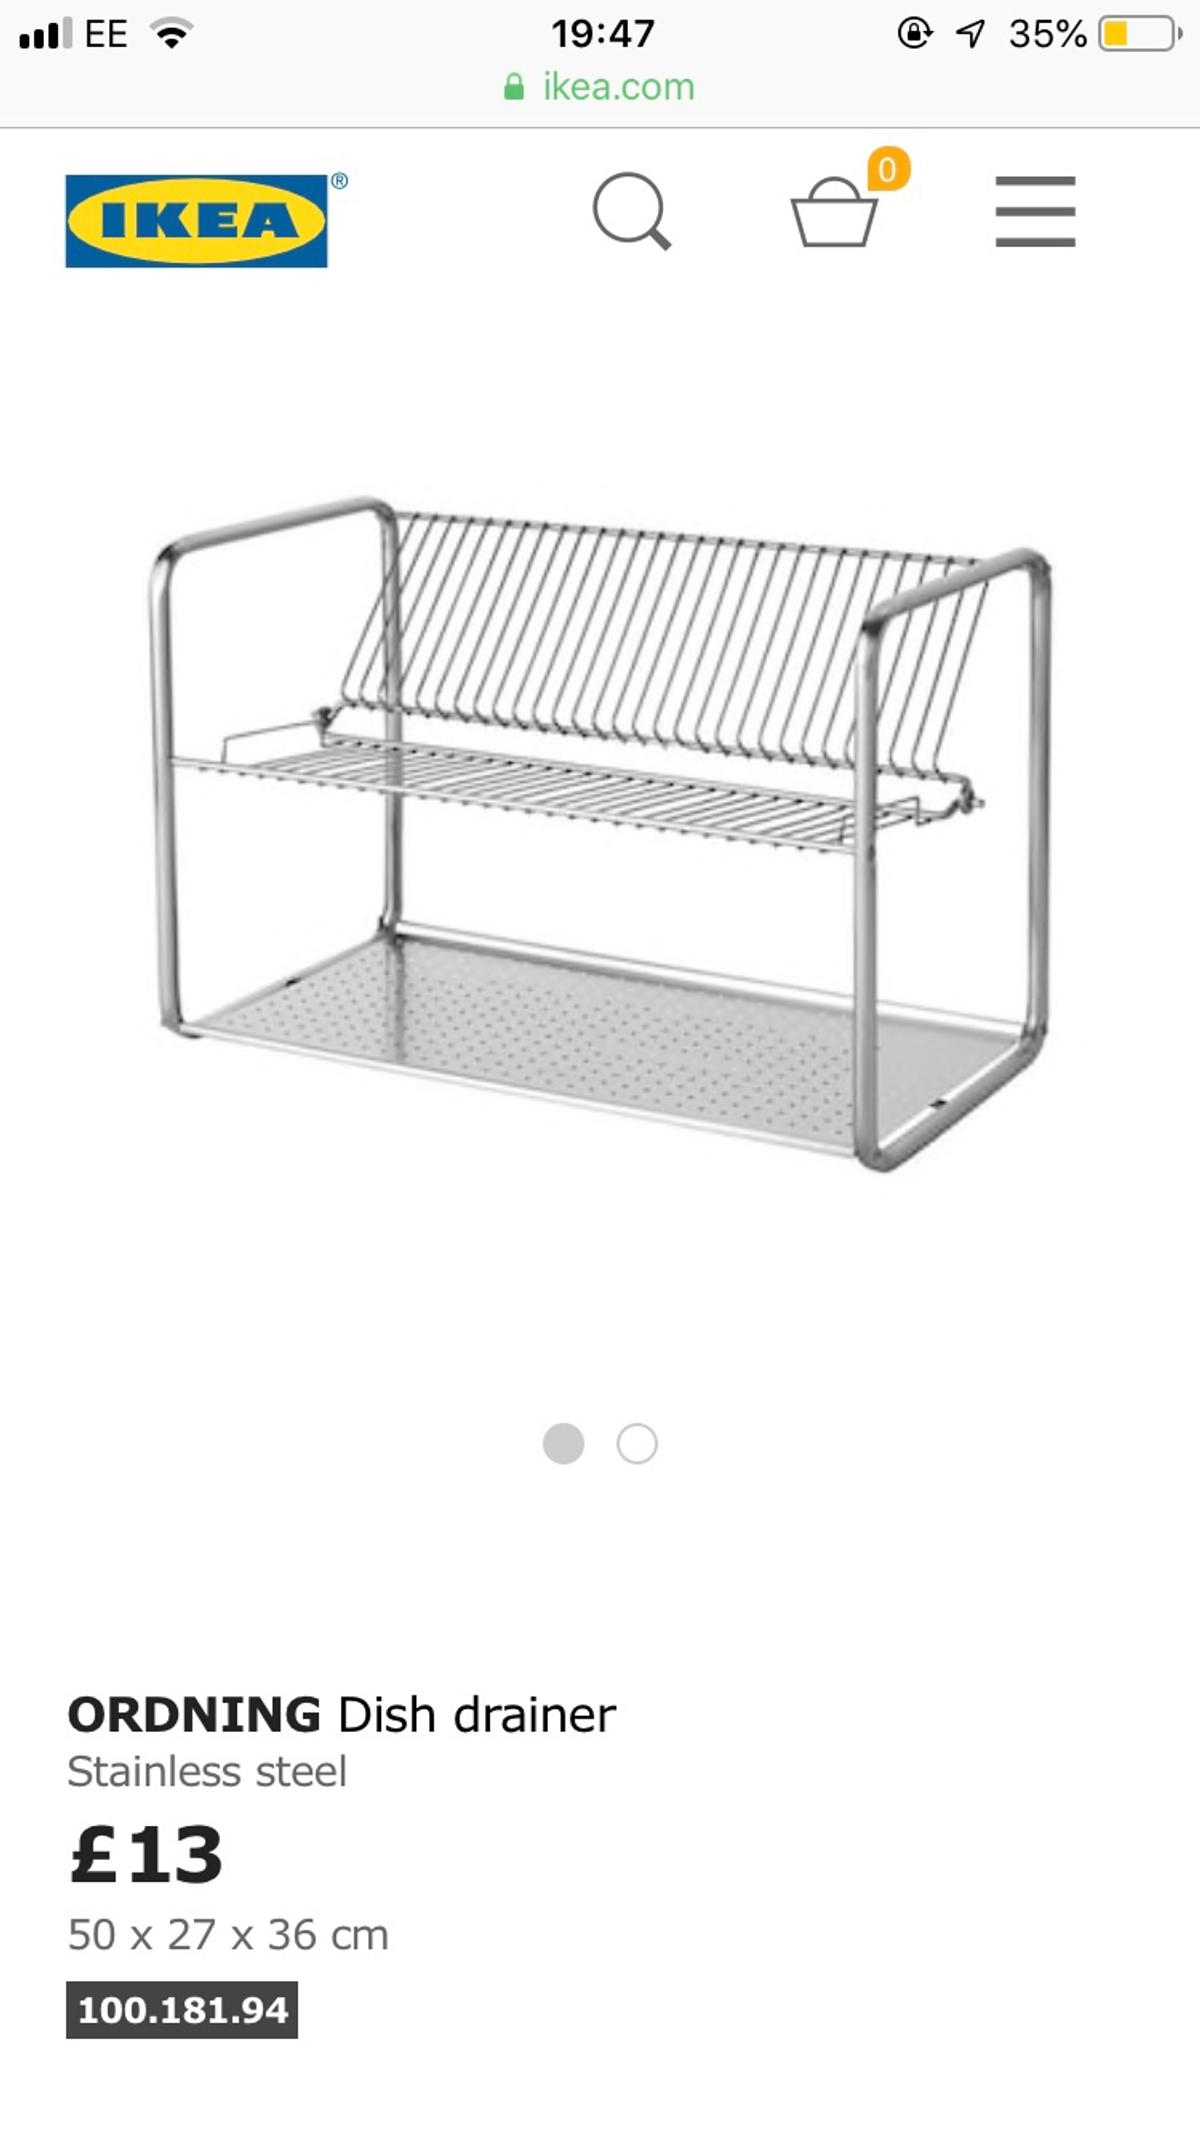 Brand new Ikea kitchen utensil rack set